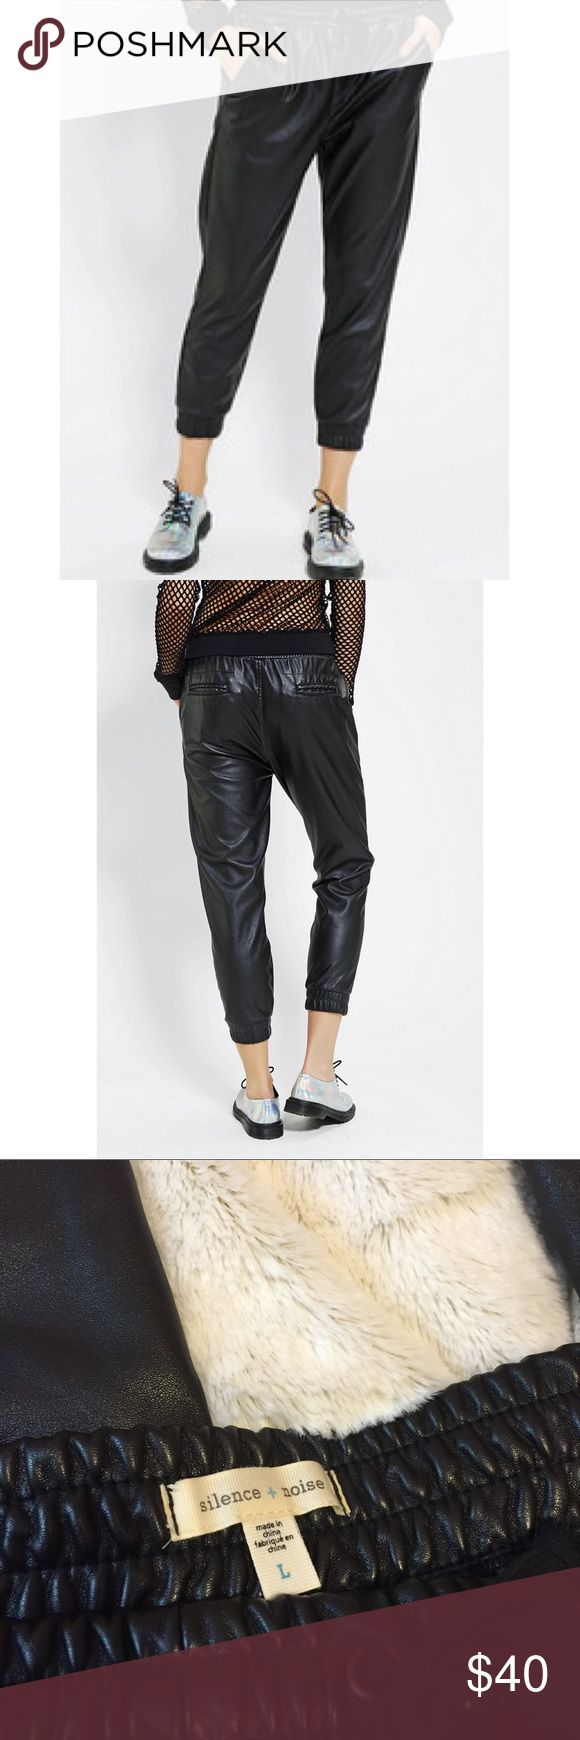 Silence + Noise UO Vegan Leather Joggers New without tags. Vegan leather joggers. From urban outfitters . Excellent condition. Drawstring joggers. Very comfortable. Pockets in front and back. Size L silence + noise Pants Track Pants & Joggers